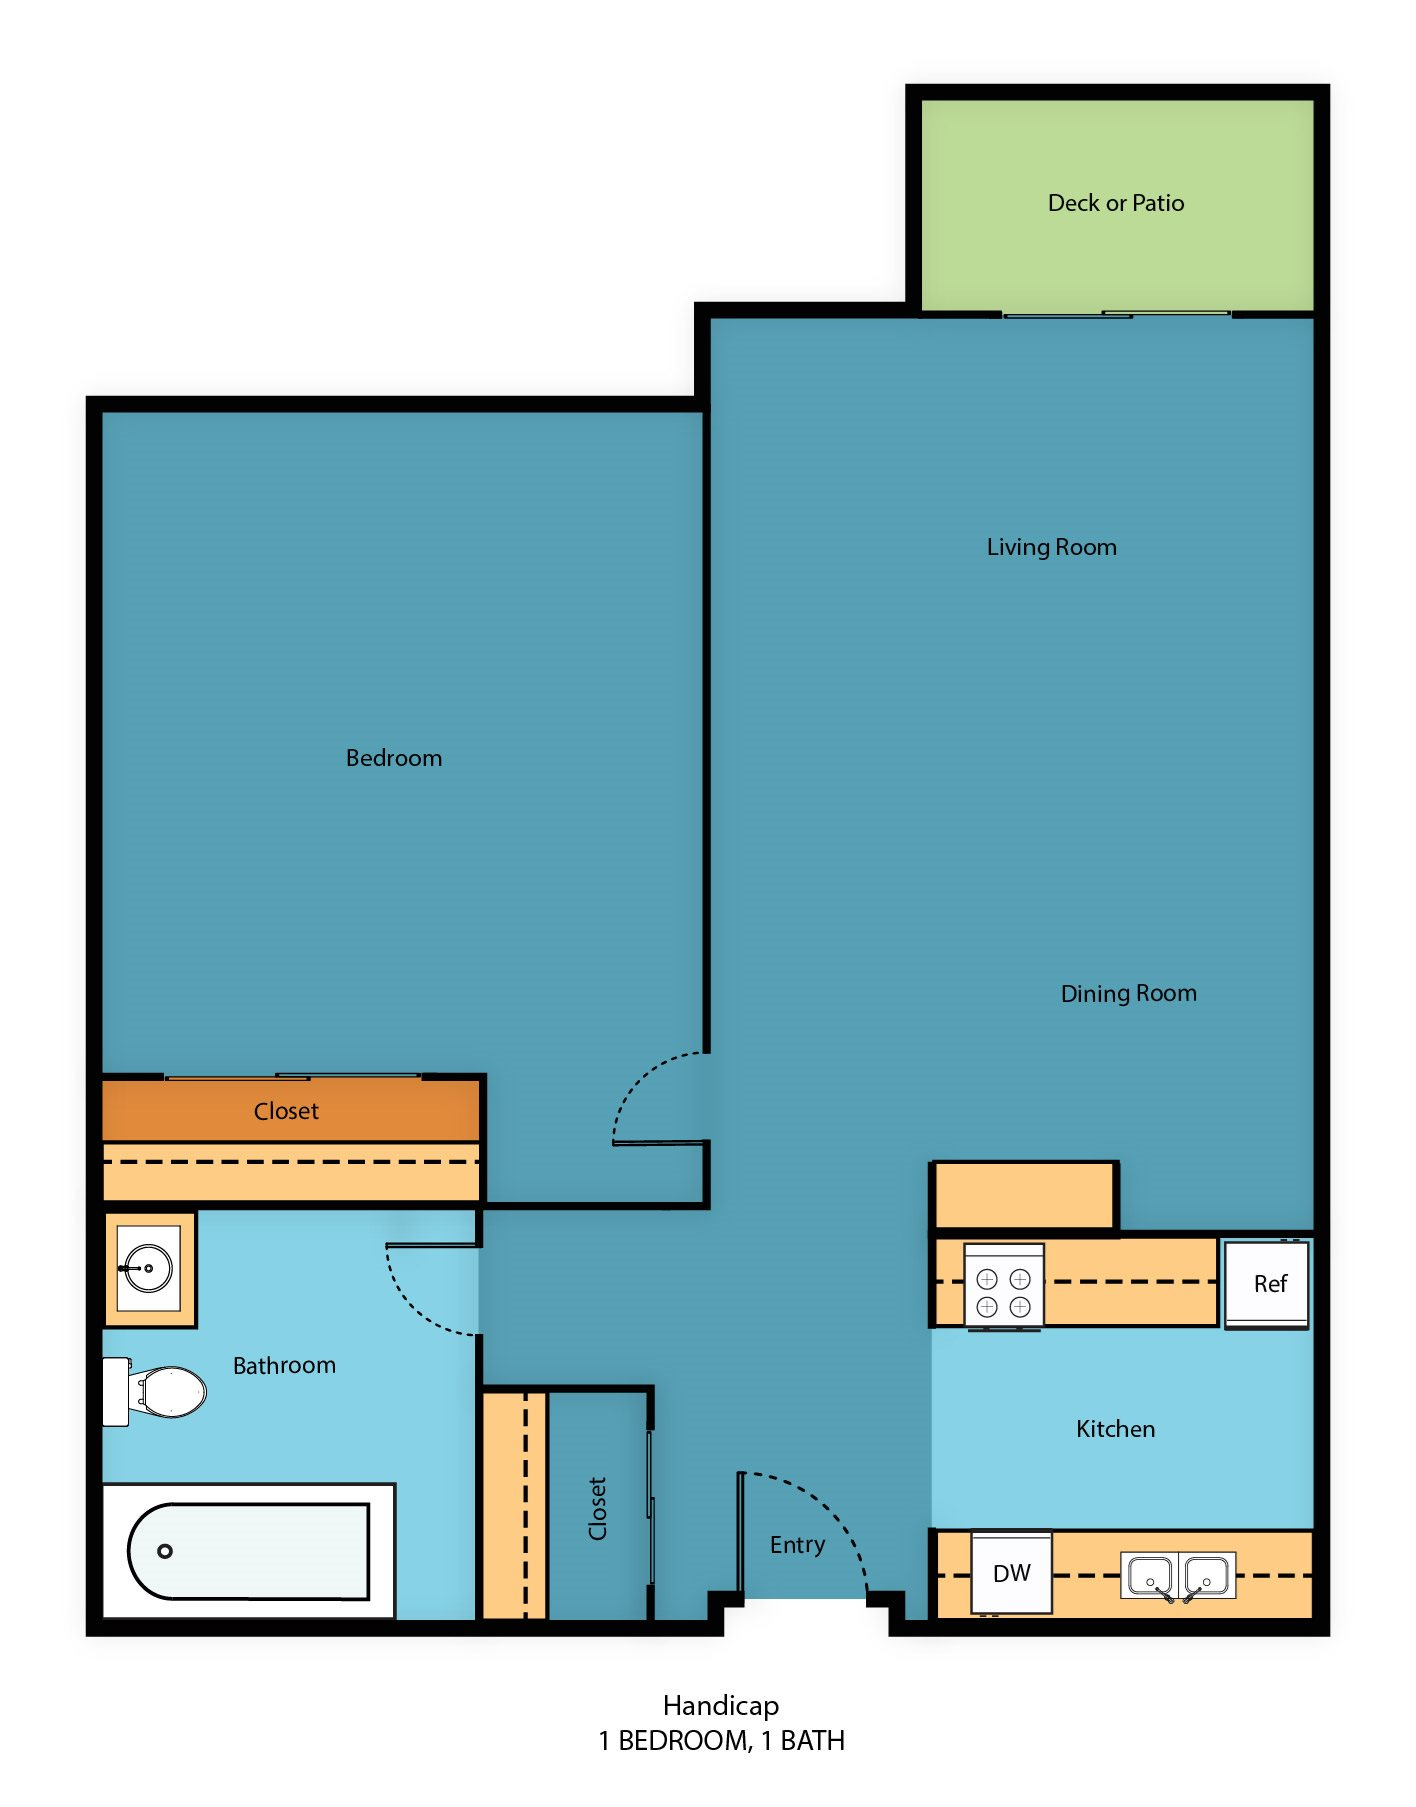 One Bedroom Handicap Floor Plan 3